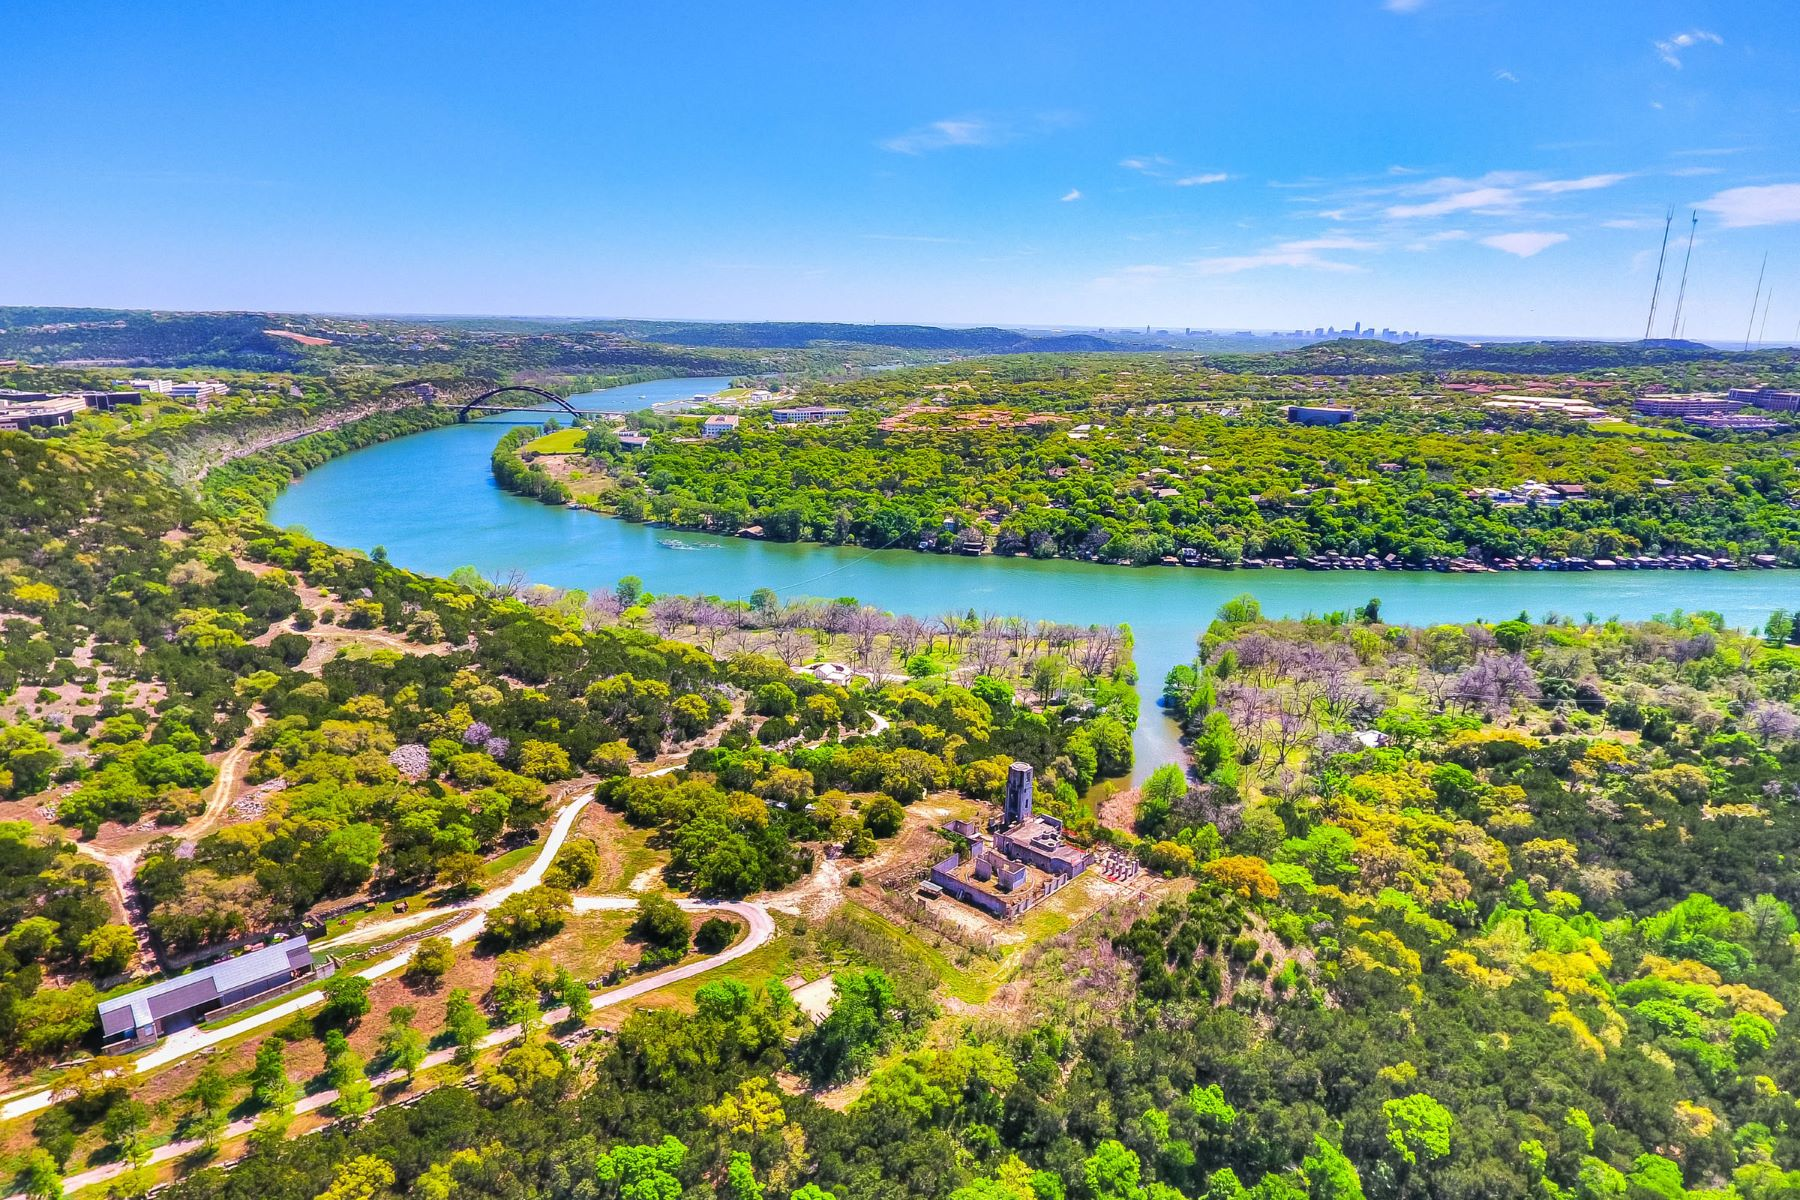 Single Family Home for Sale at Lake Austin Ranch 7400 Coldwater Canyon Austin, Texas 78730 United States